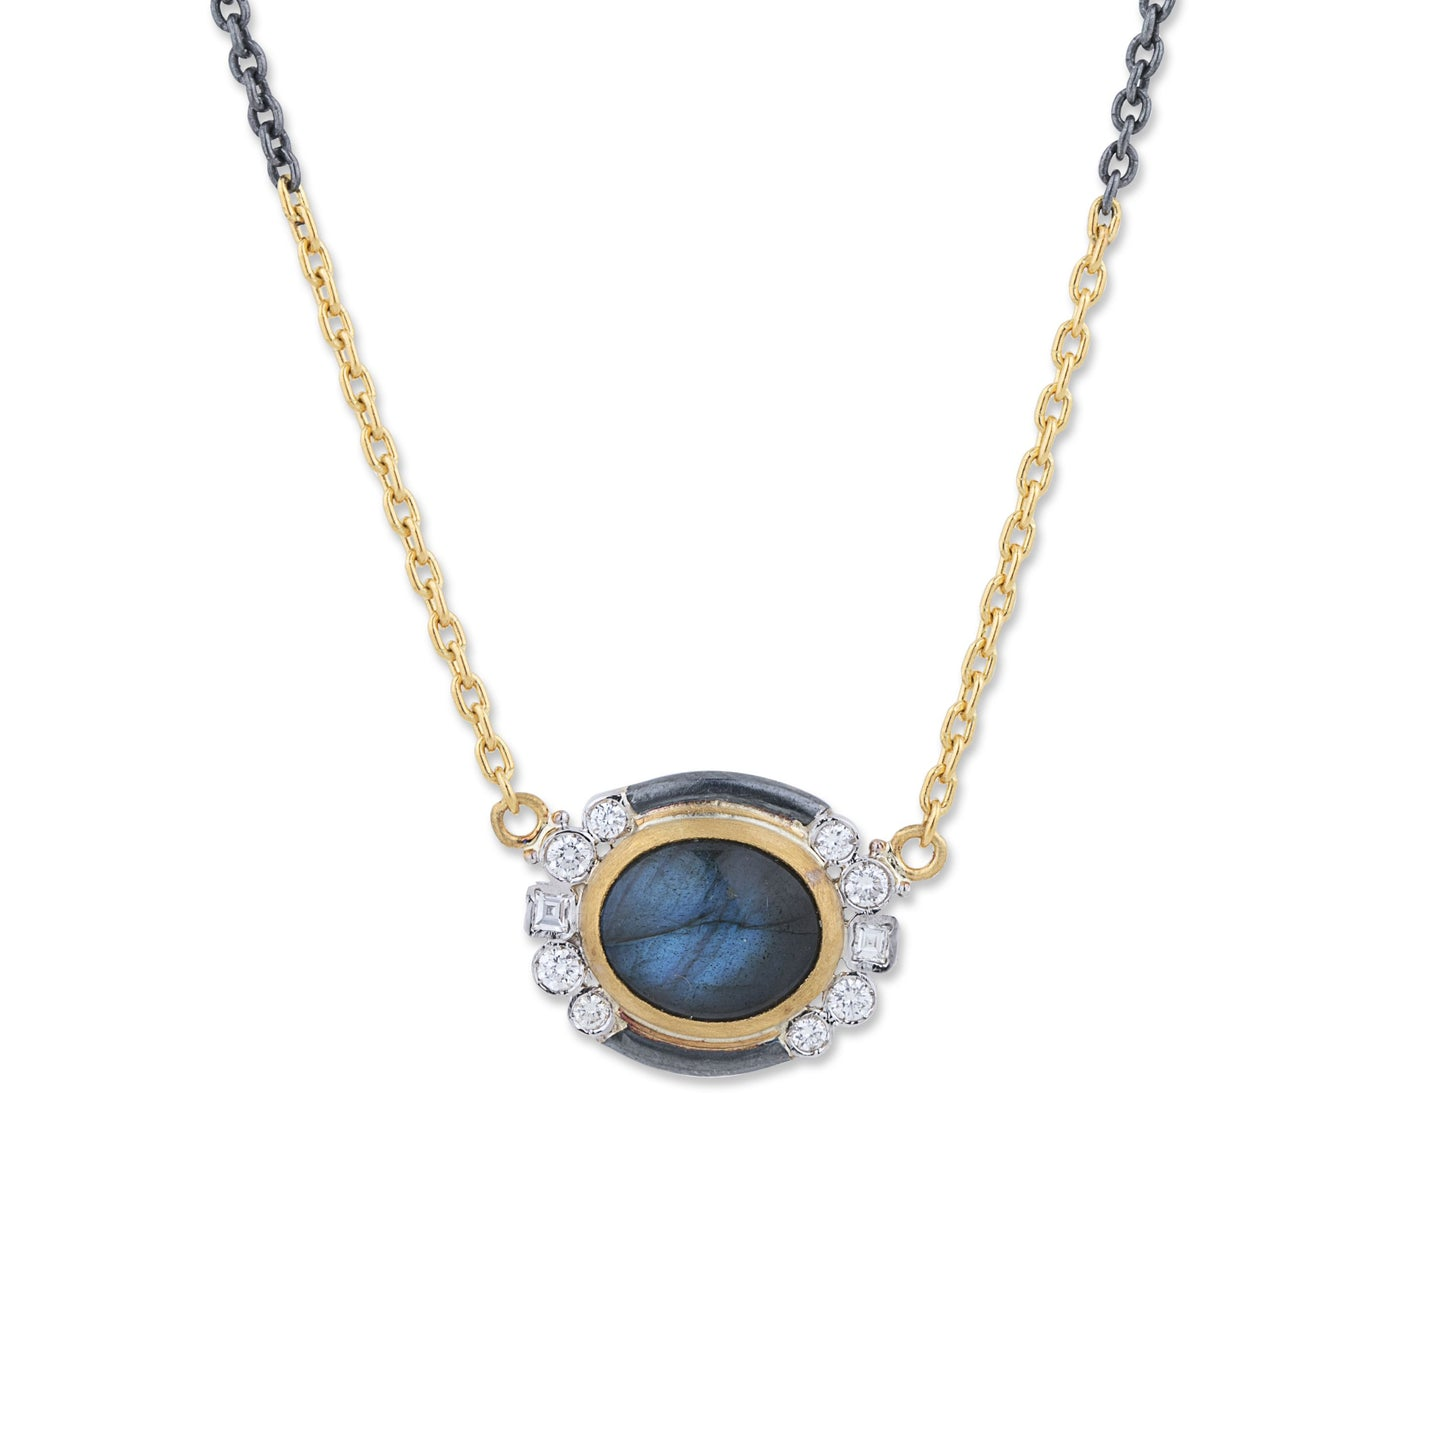 Lika Behar Two-Tone Labrabdorite Necklace